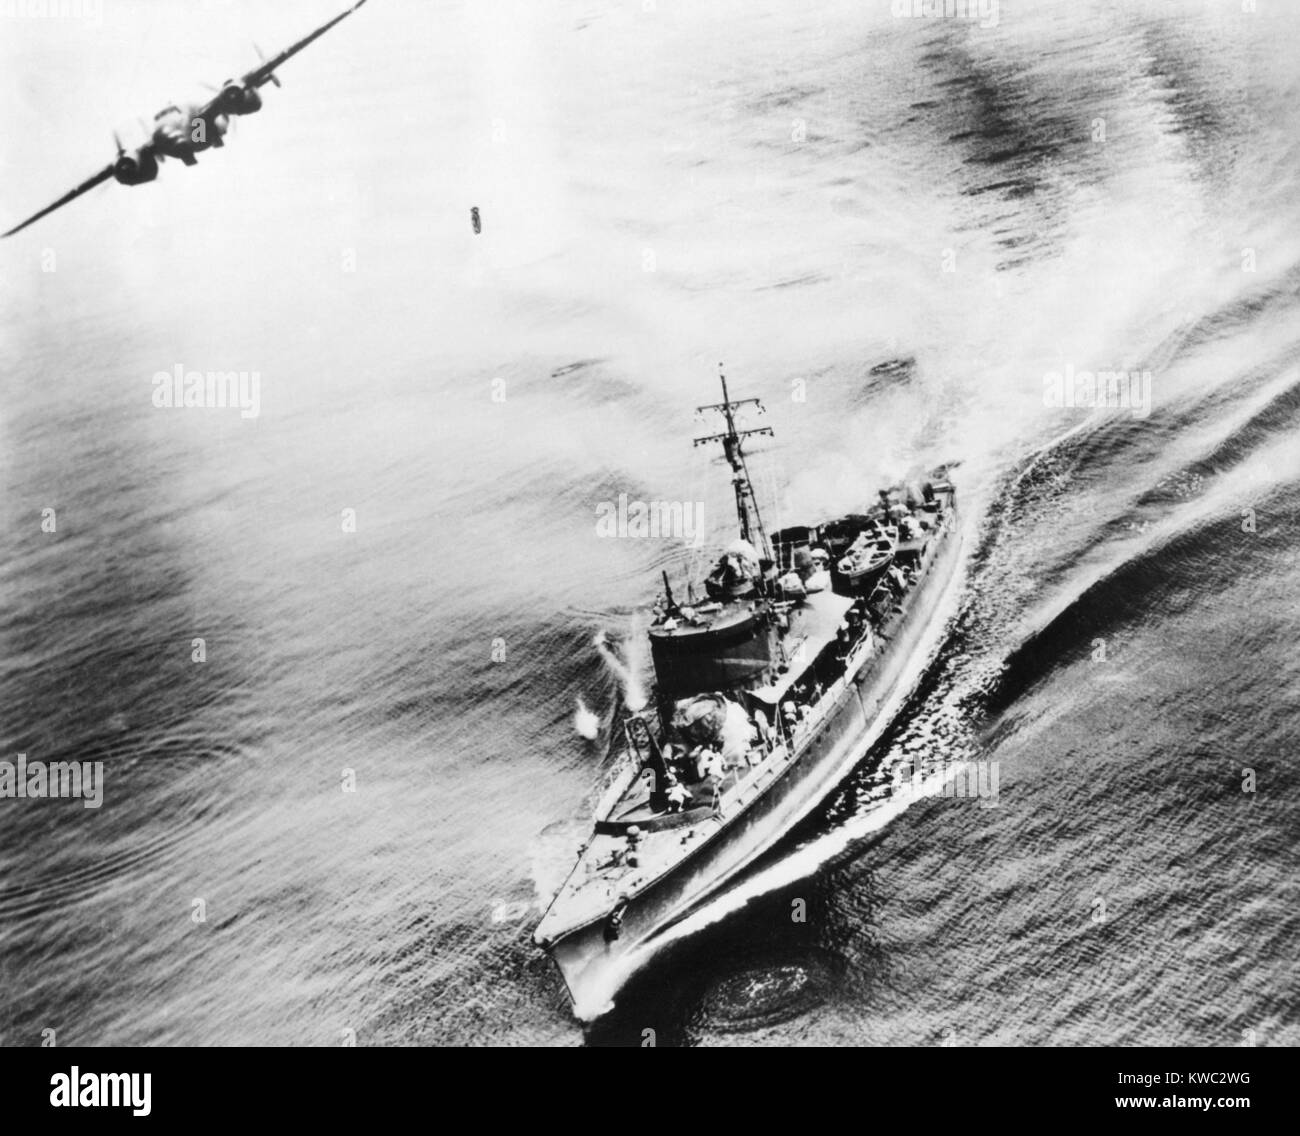 Small Japanese war vessel bombed by U.S. B-25 bomber in the Bismarck Sea, March 21, 1944. The ships crew can be - Stock Image